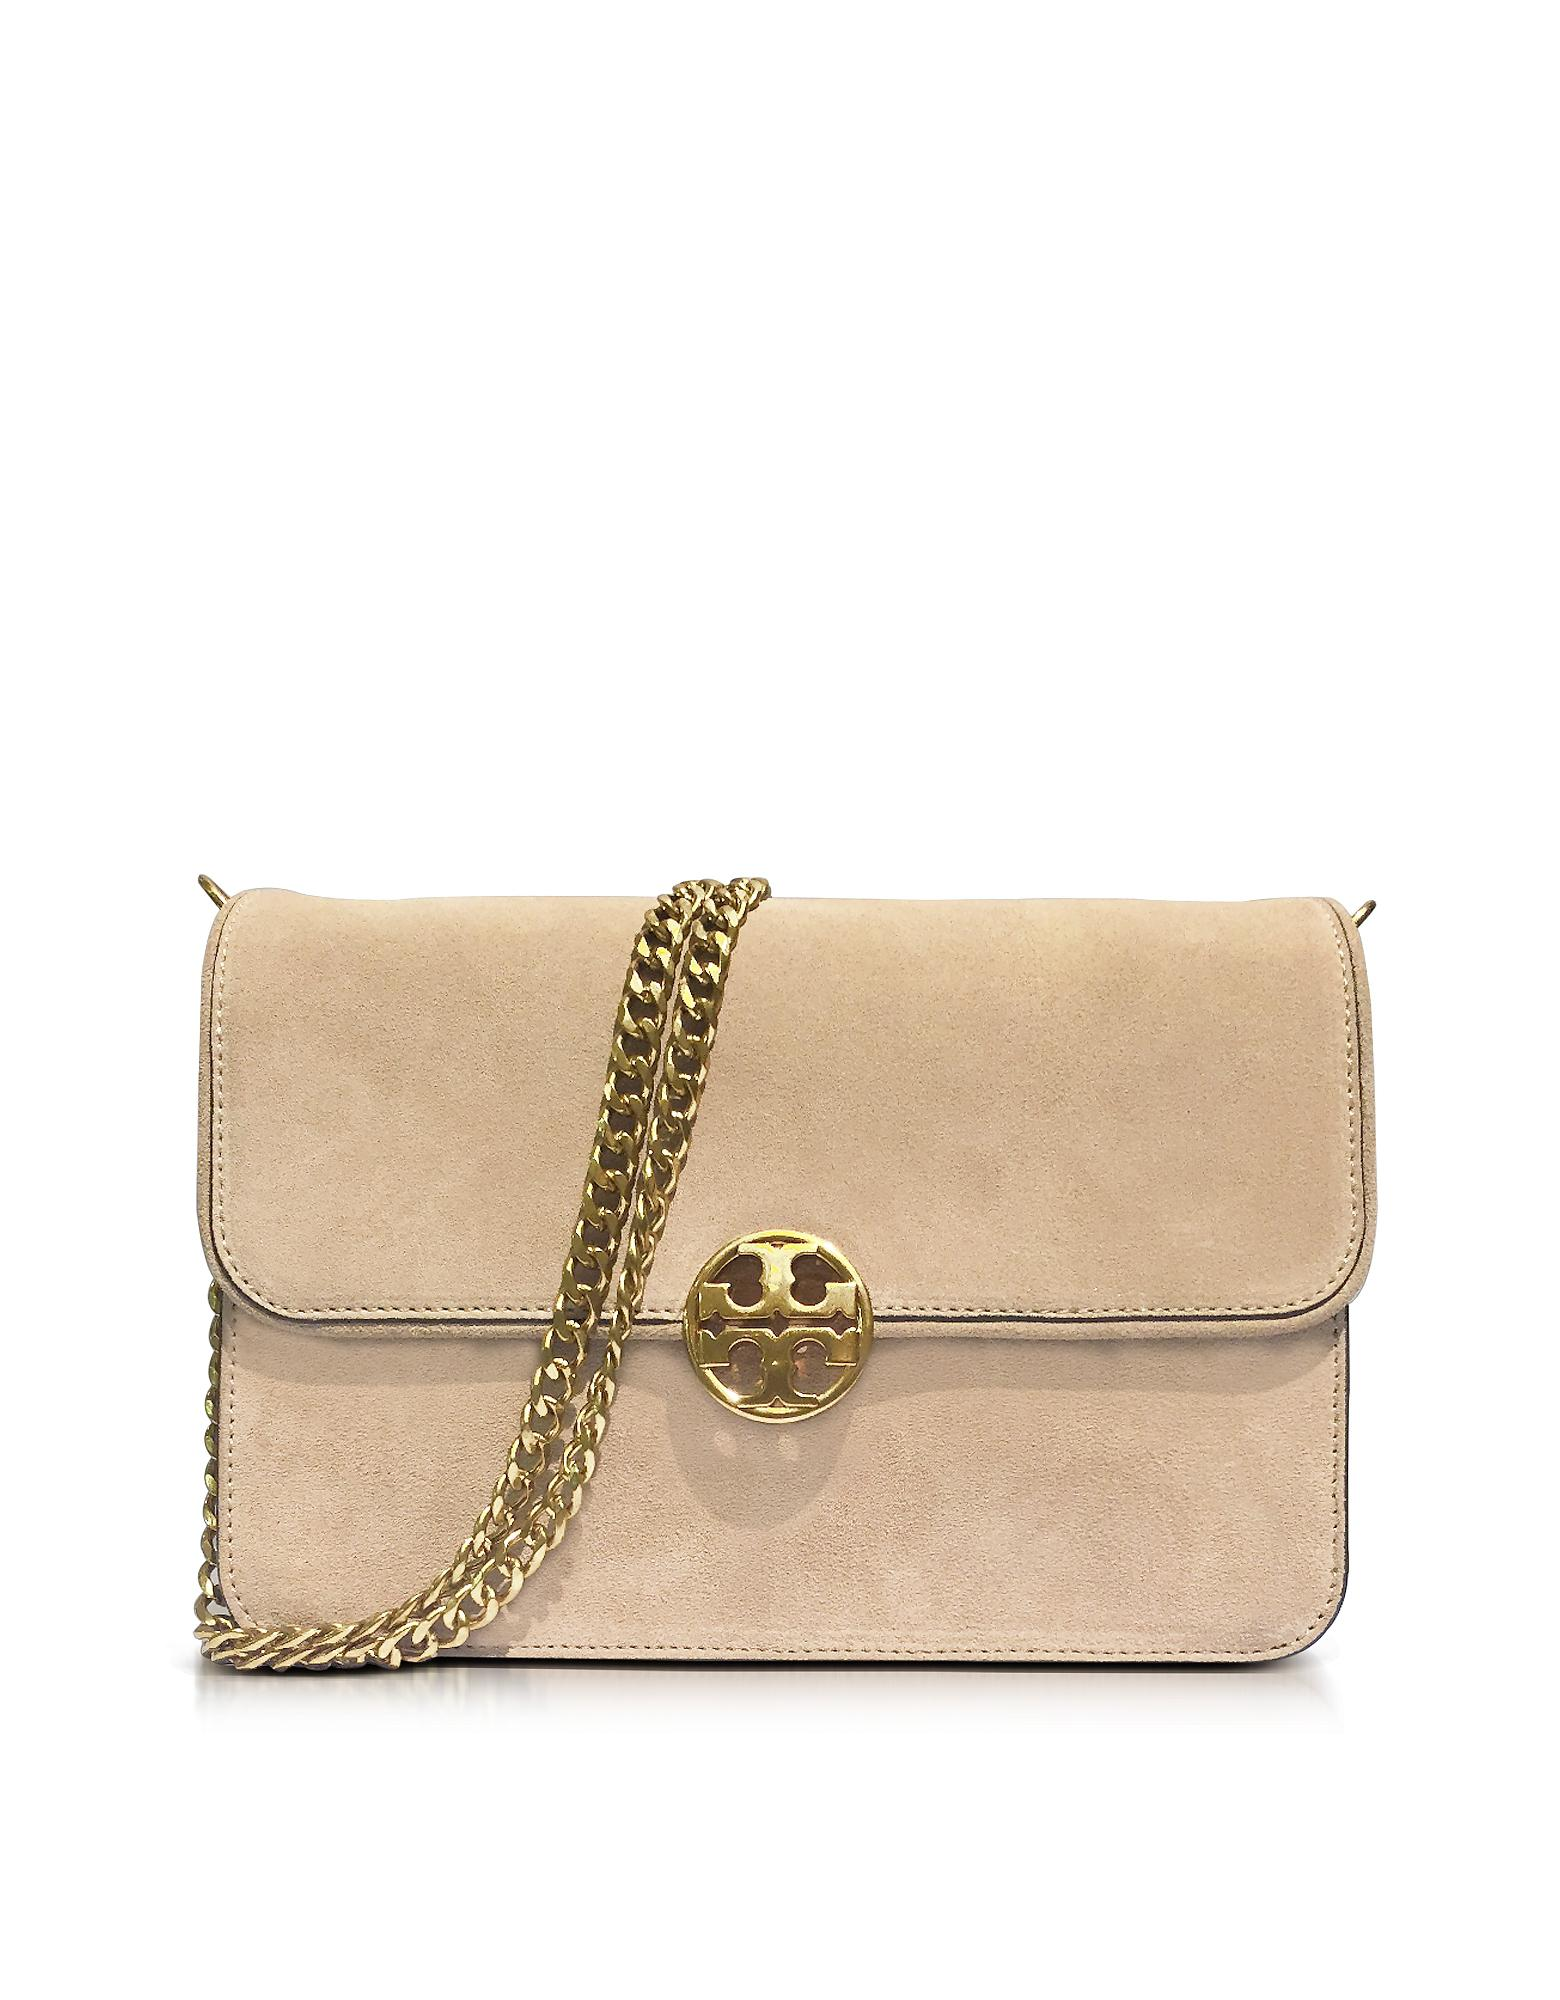 d05f06dcf Tory Burch Chelsea Stucco Suede Shoulder Bag in Natural - Lyst